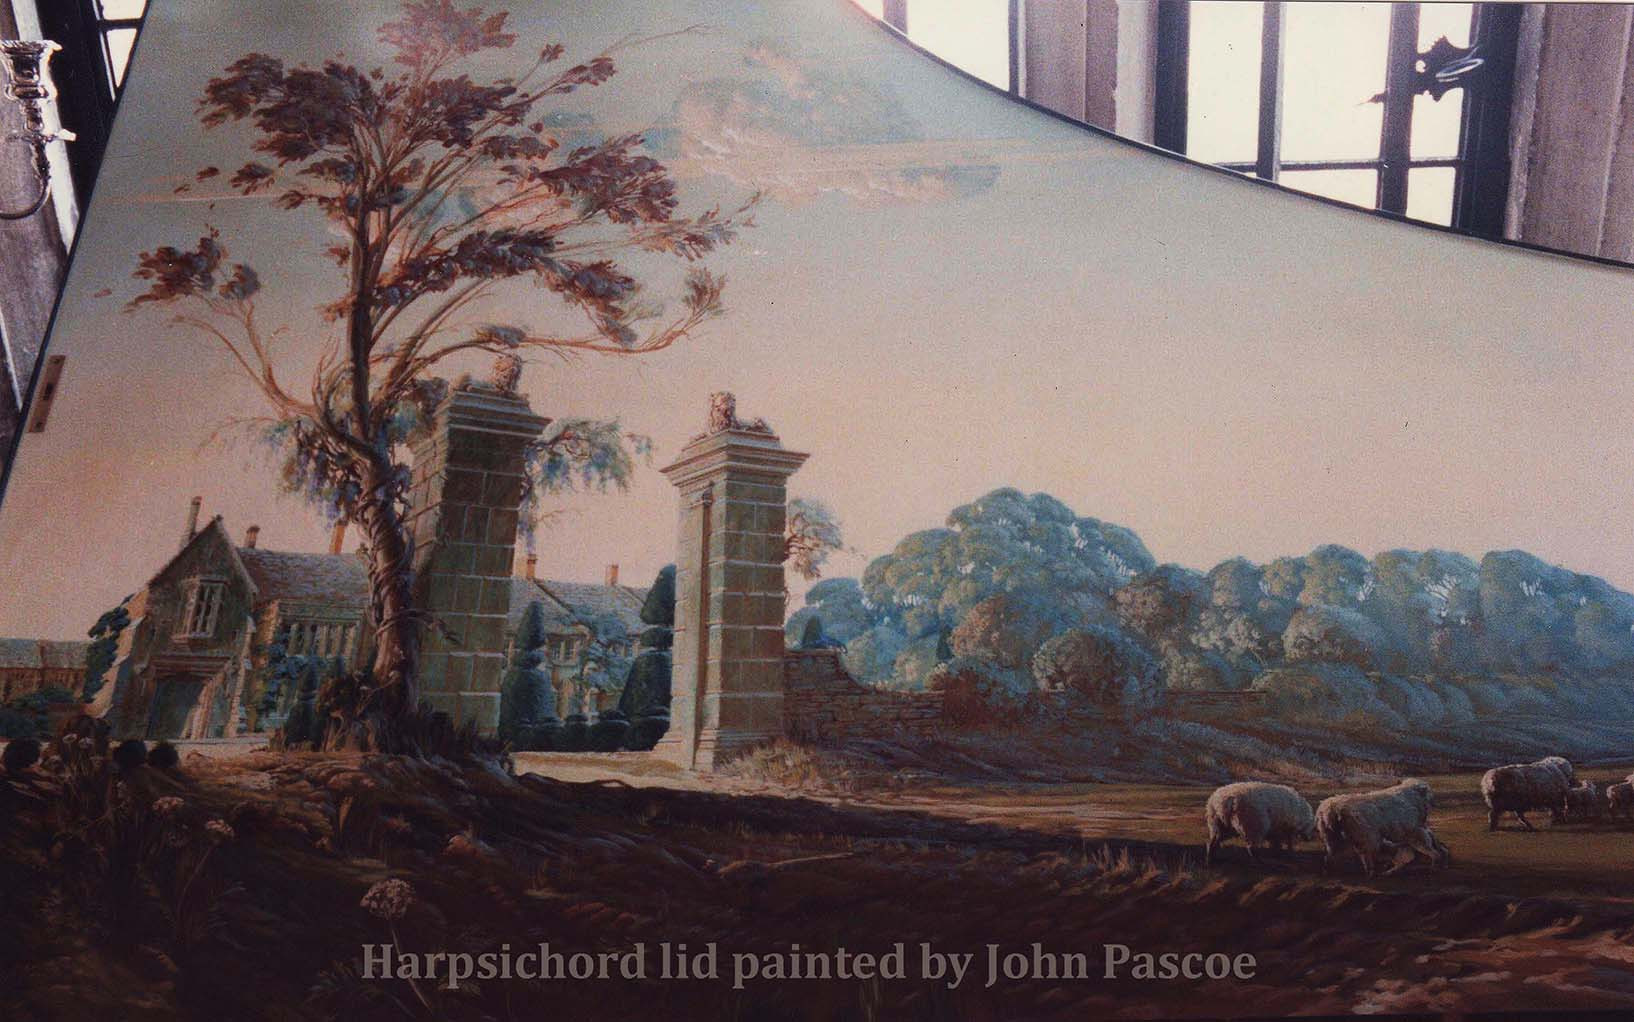 WRAXALL MANOR HARPSICHORD  I painted the interior of the lid with a view of the manor house,  as seen from massive entrance columns.  The lions on their caps were part of the heraldry of the manor.